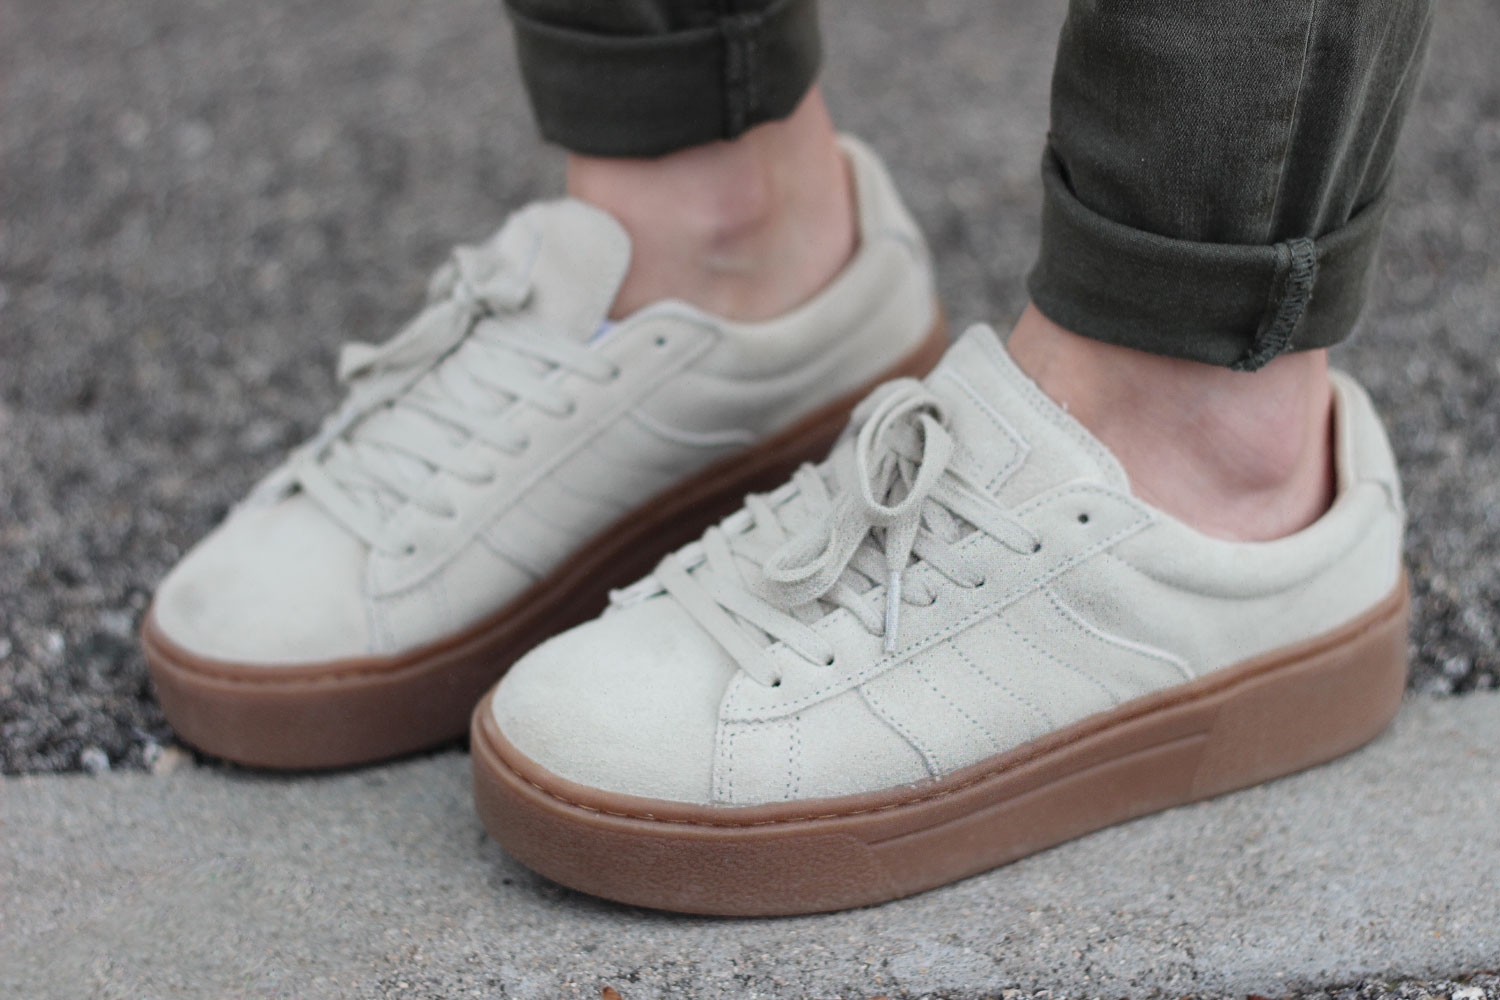 baskets-zara-inspiration-creepers-puma-blogmode